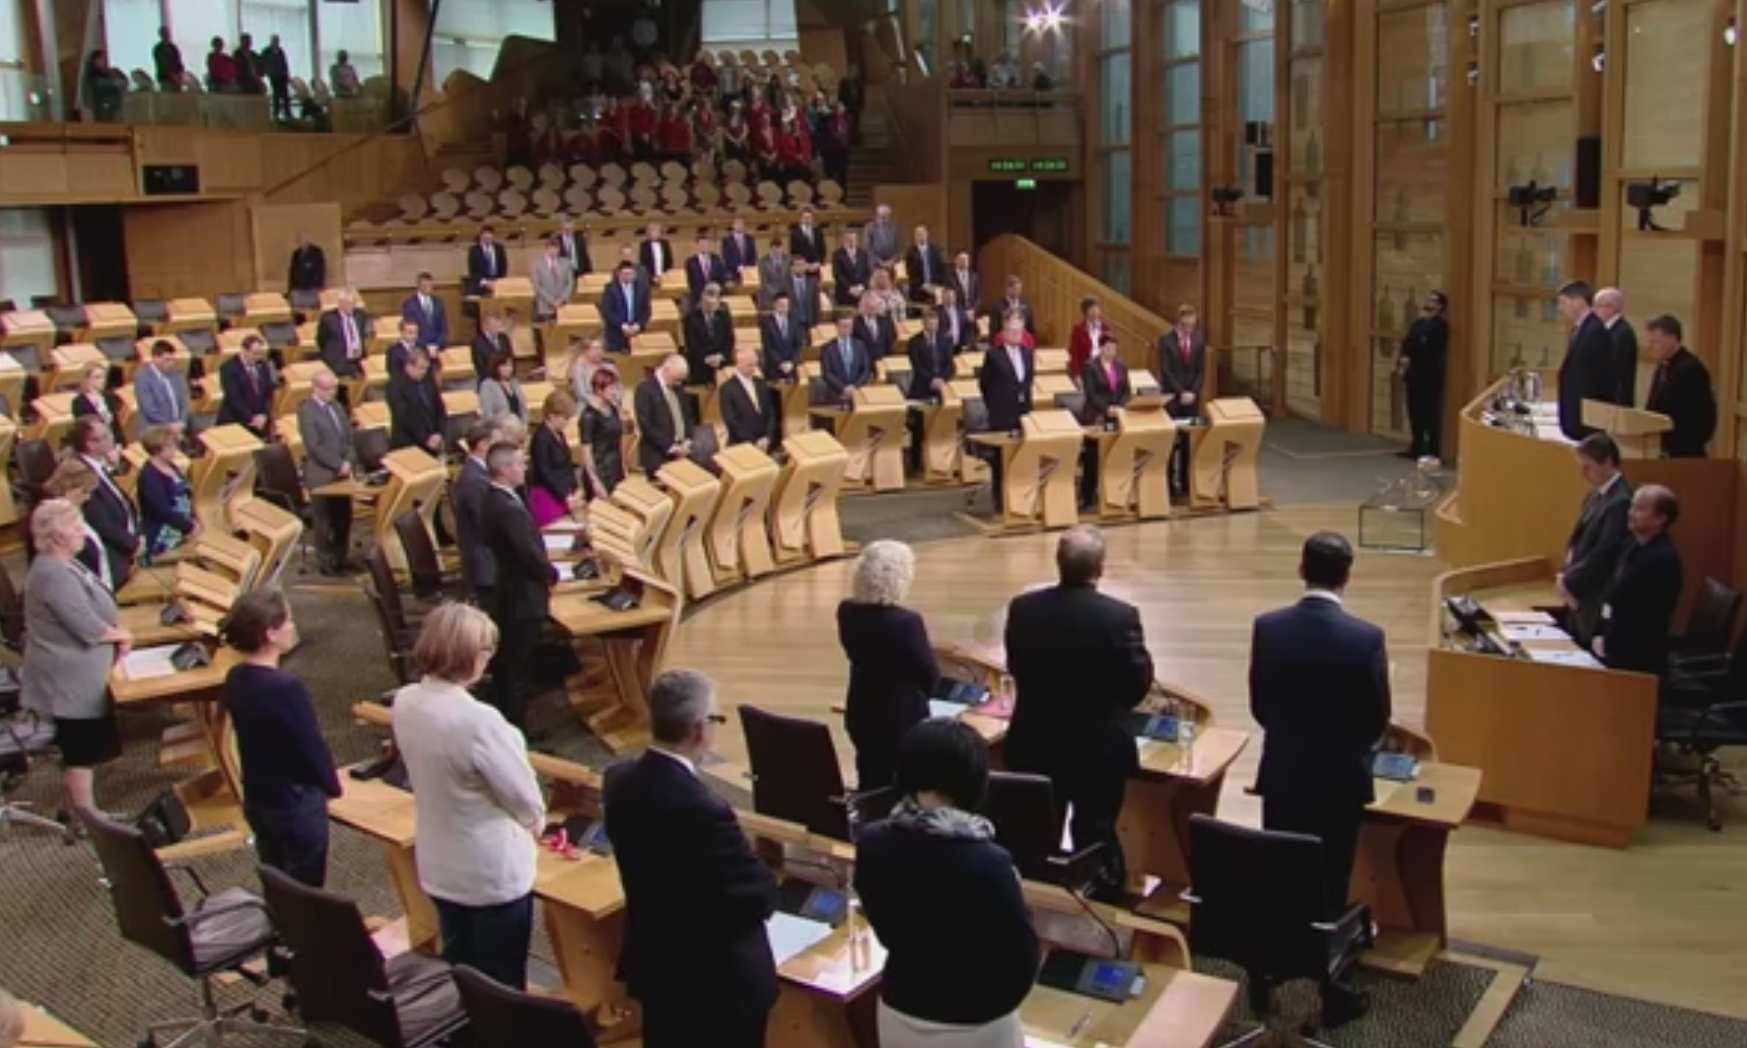 MSPs stand to observe a minute's silence in tribute to the victims of the Orlando shootings.